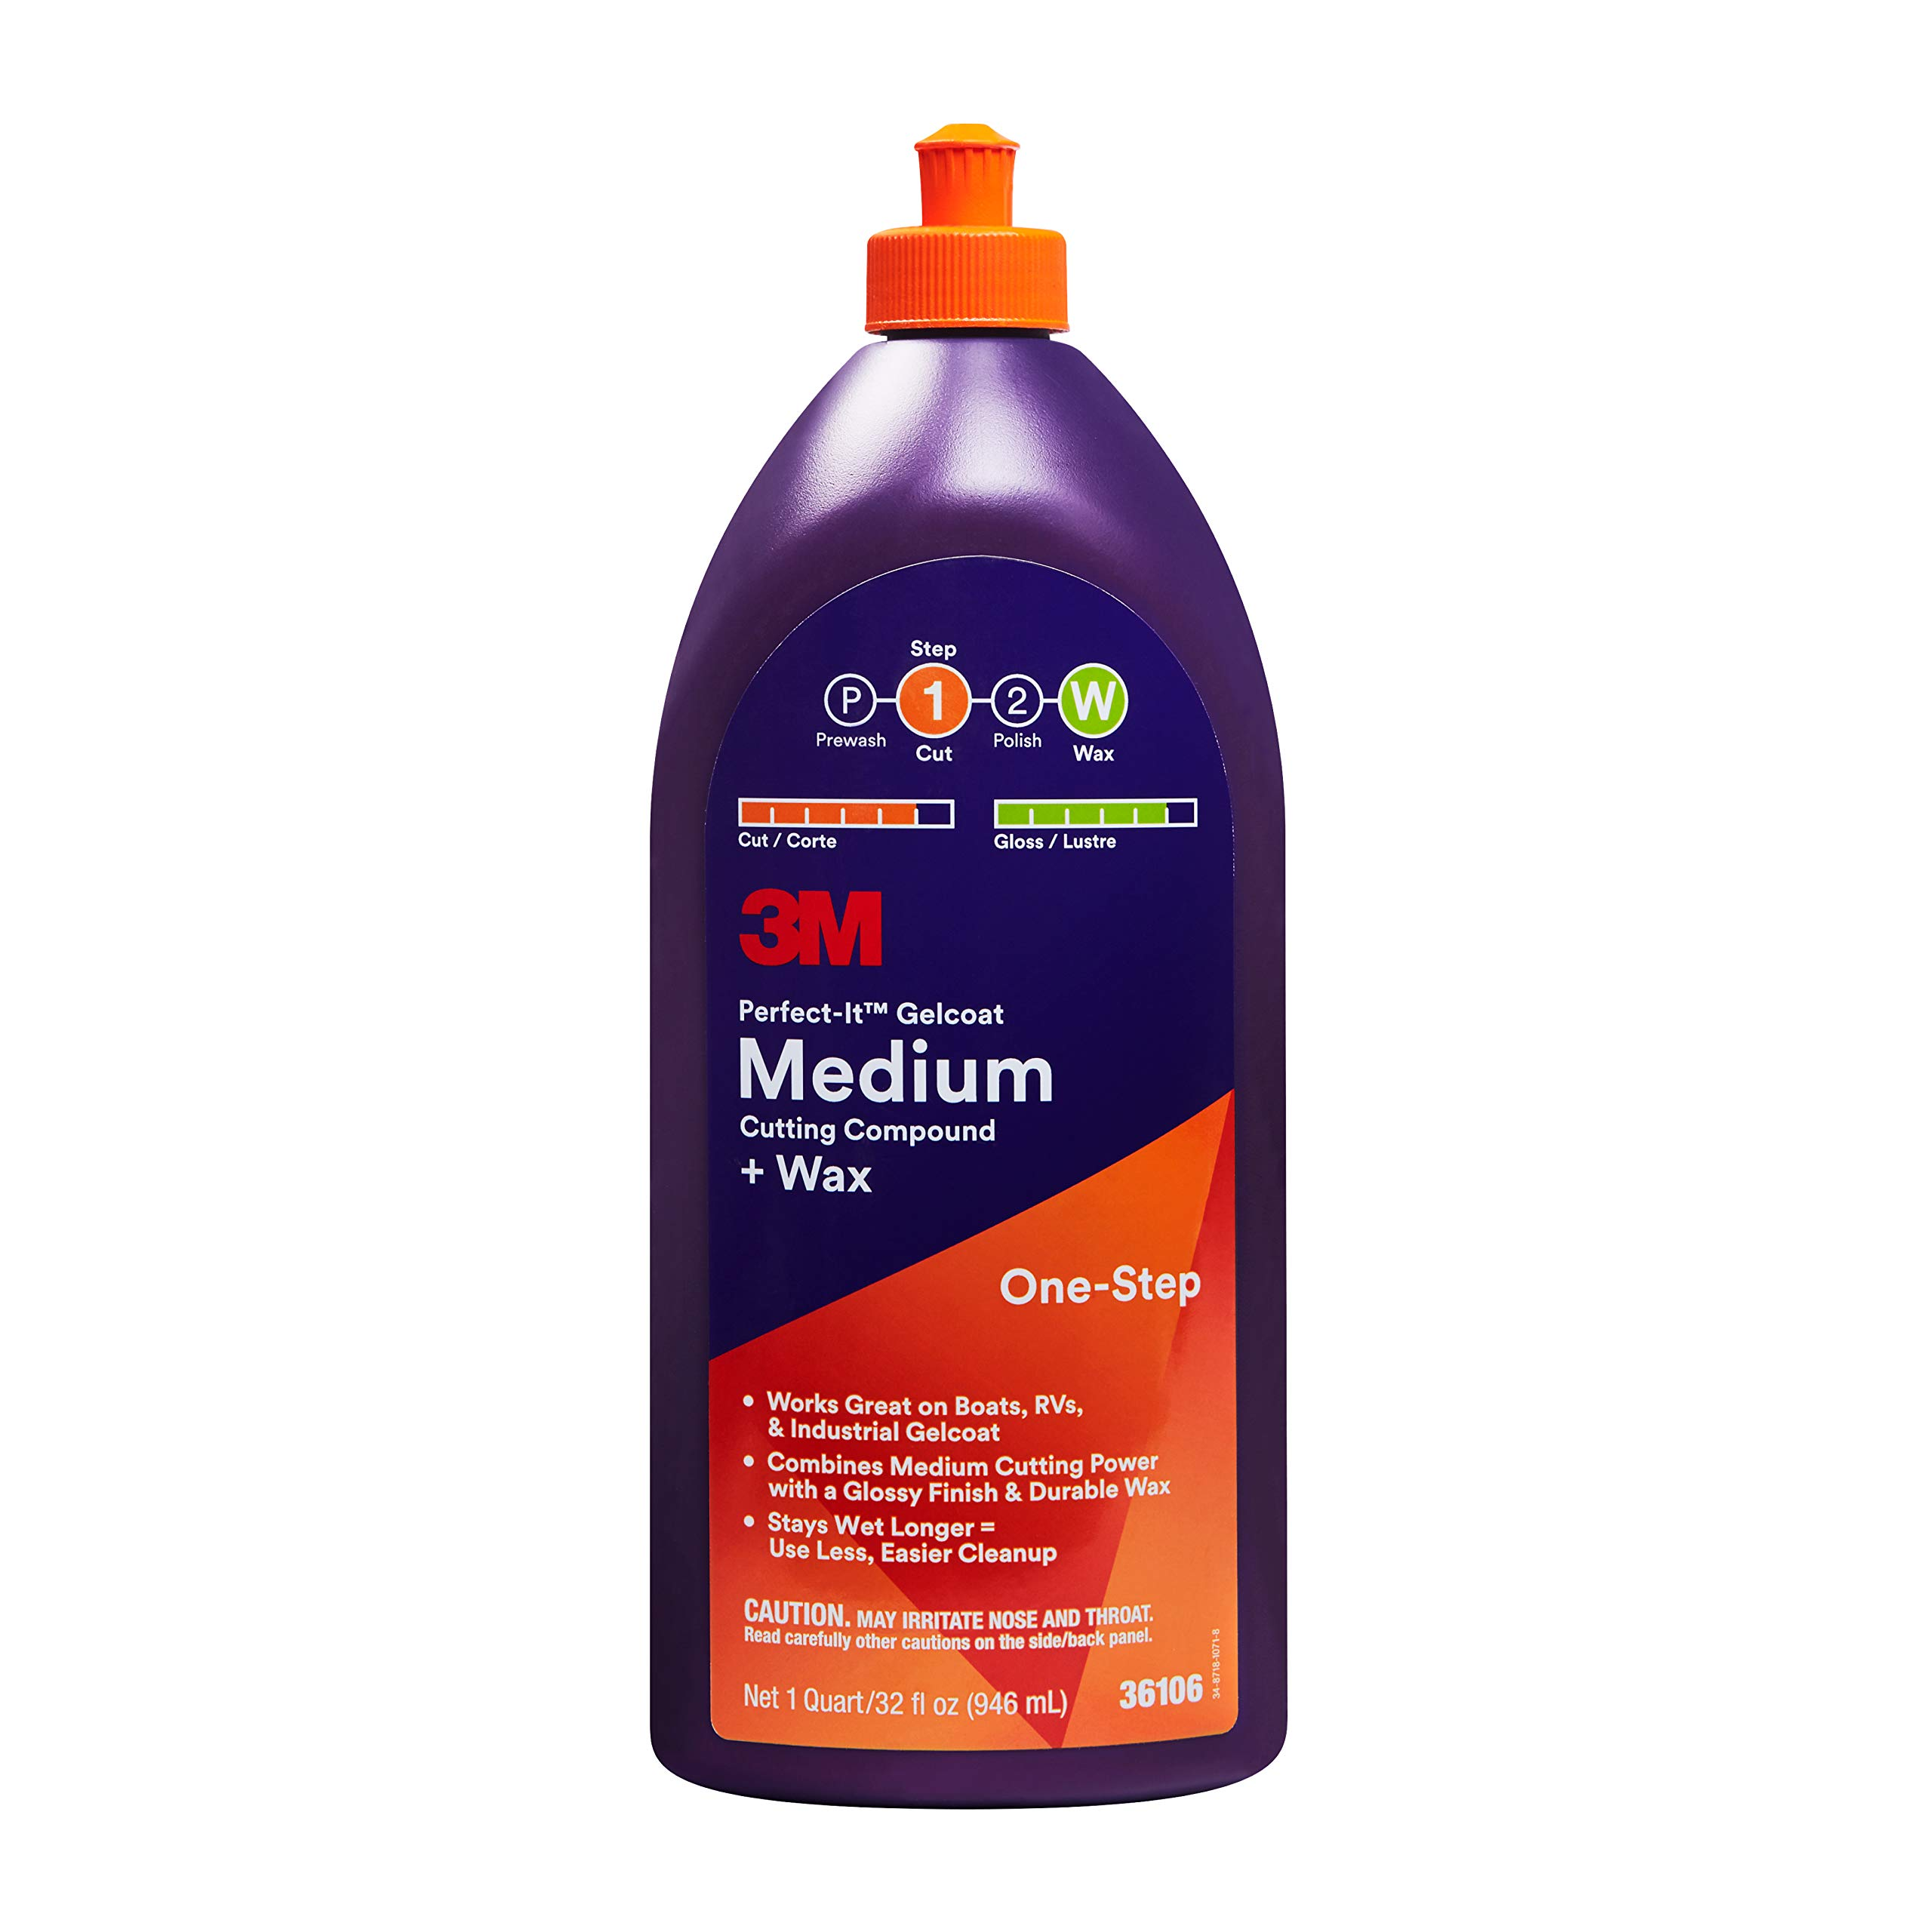 3M Perfect-It Gelcoat Medium Cutting Compound + Wax (36106) - For Boats and RVs - 1 Quart